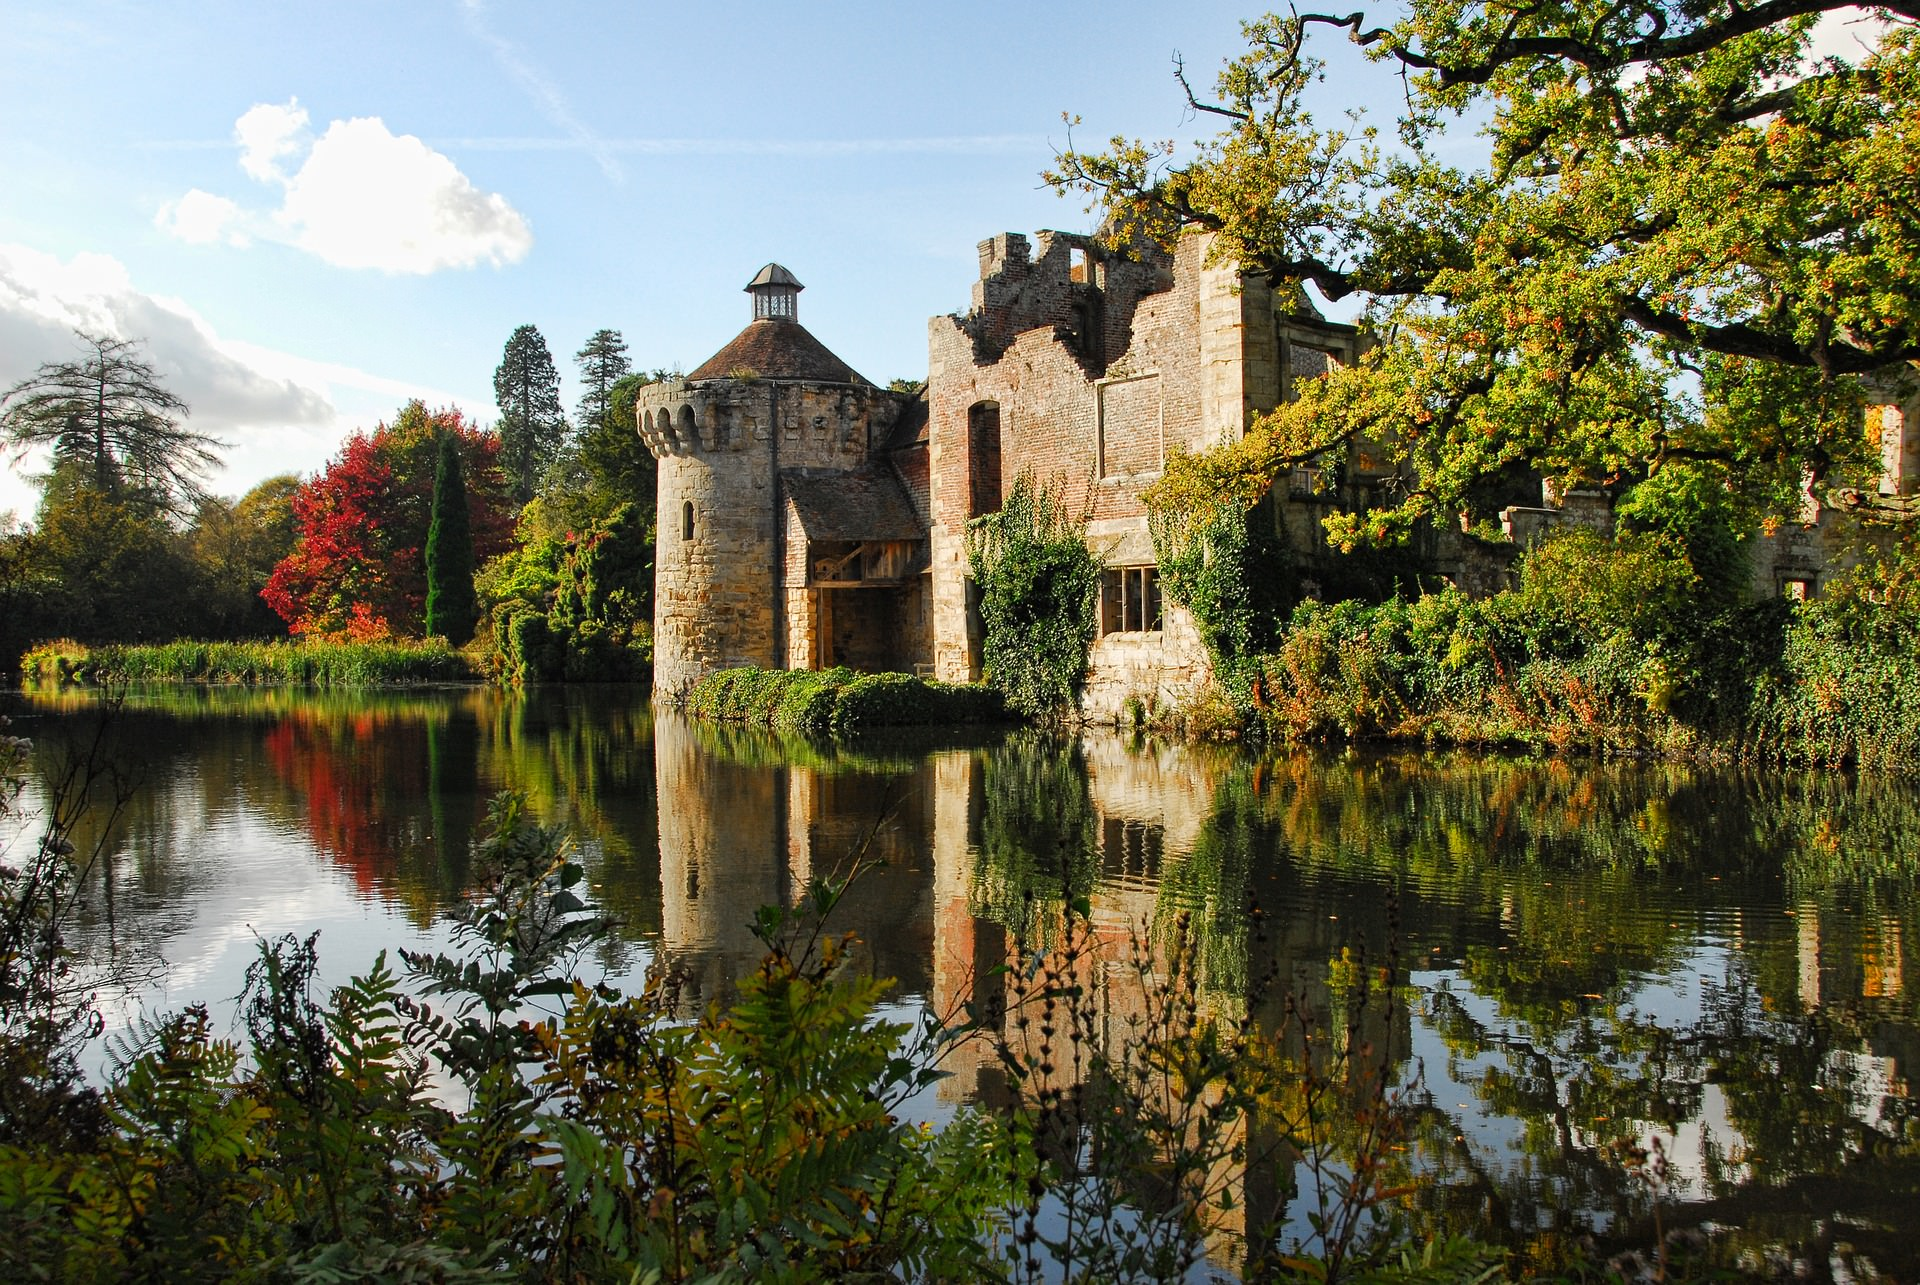 An image of Scotney castle in Kent by the waterside.